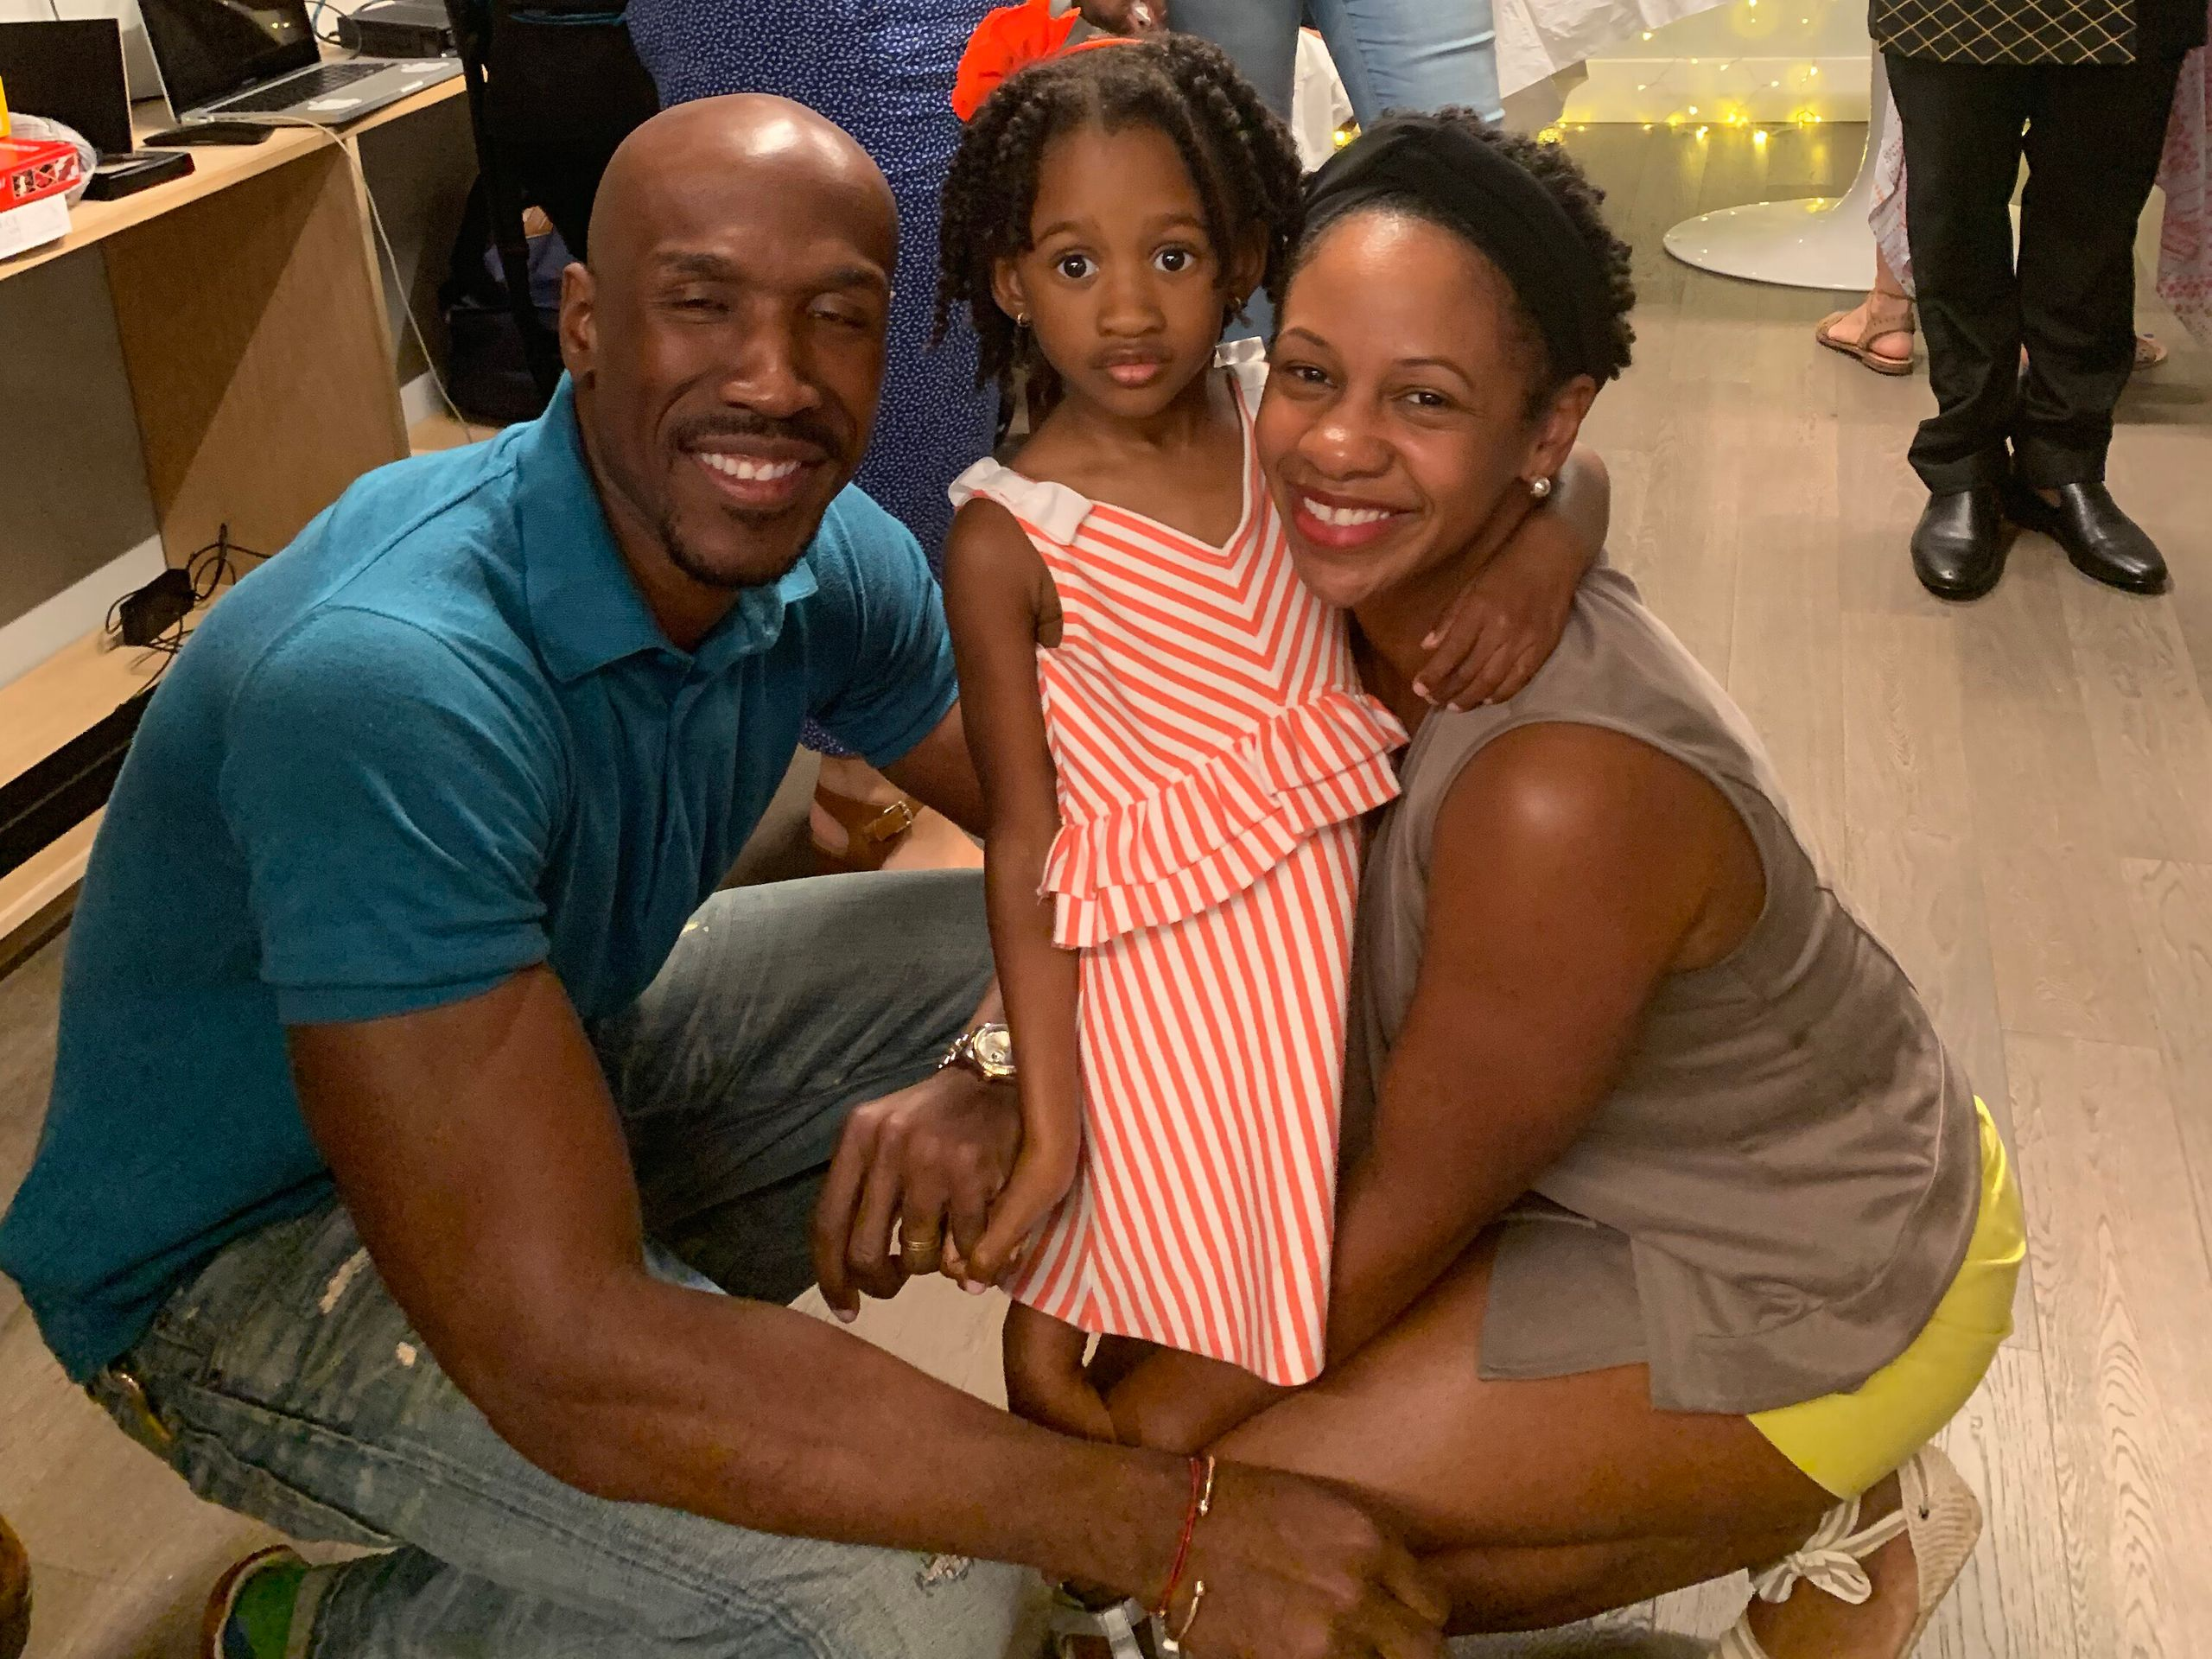 Ernest, Presley and Tamiesha Parris pose for a family photo at a small gathering in Queens, back when such gatherings were a